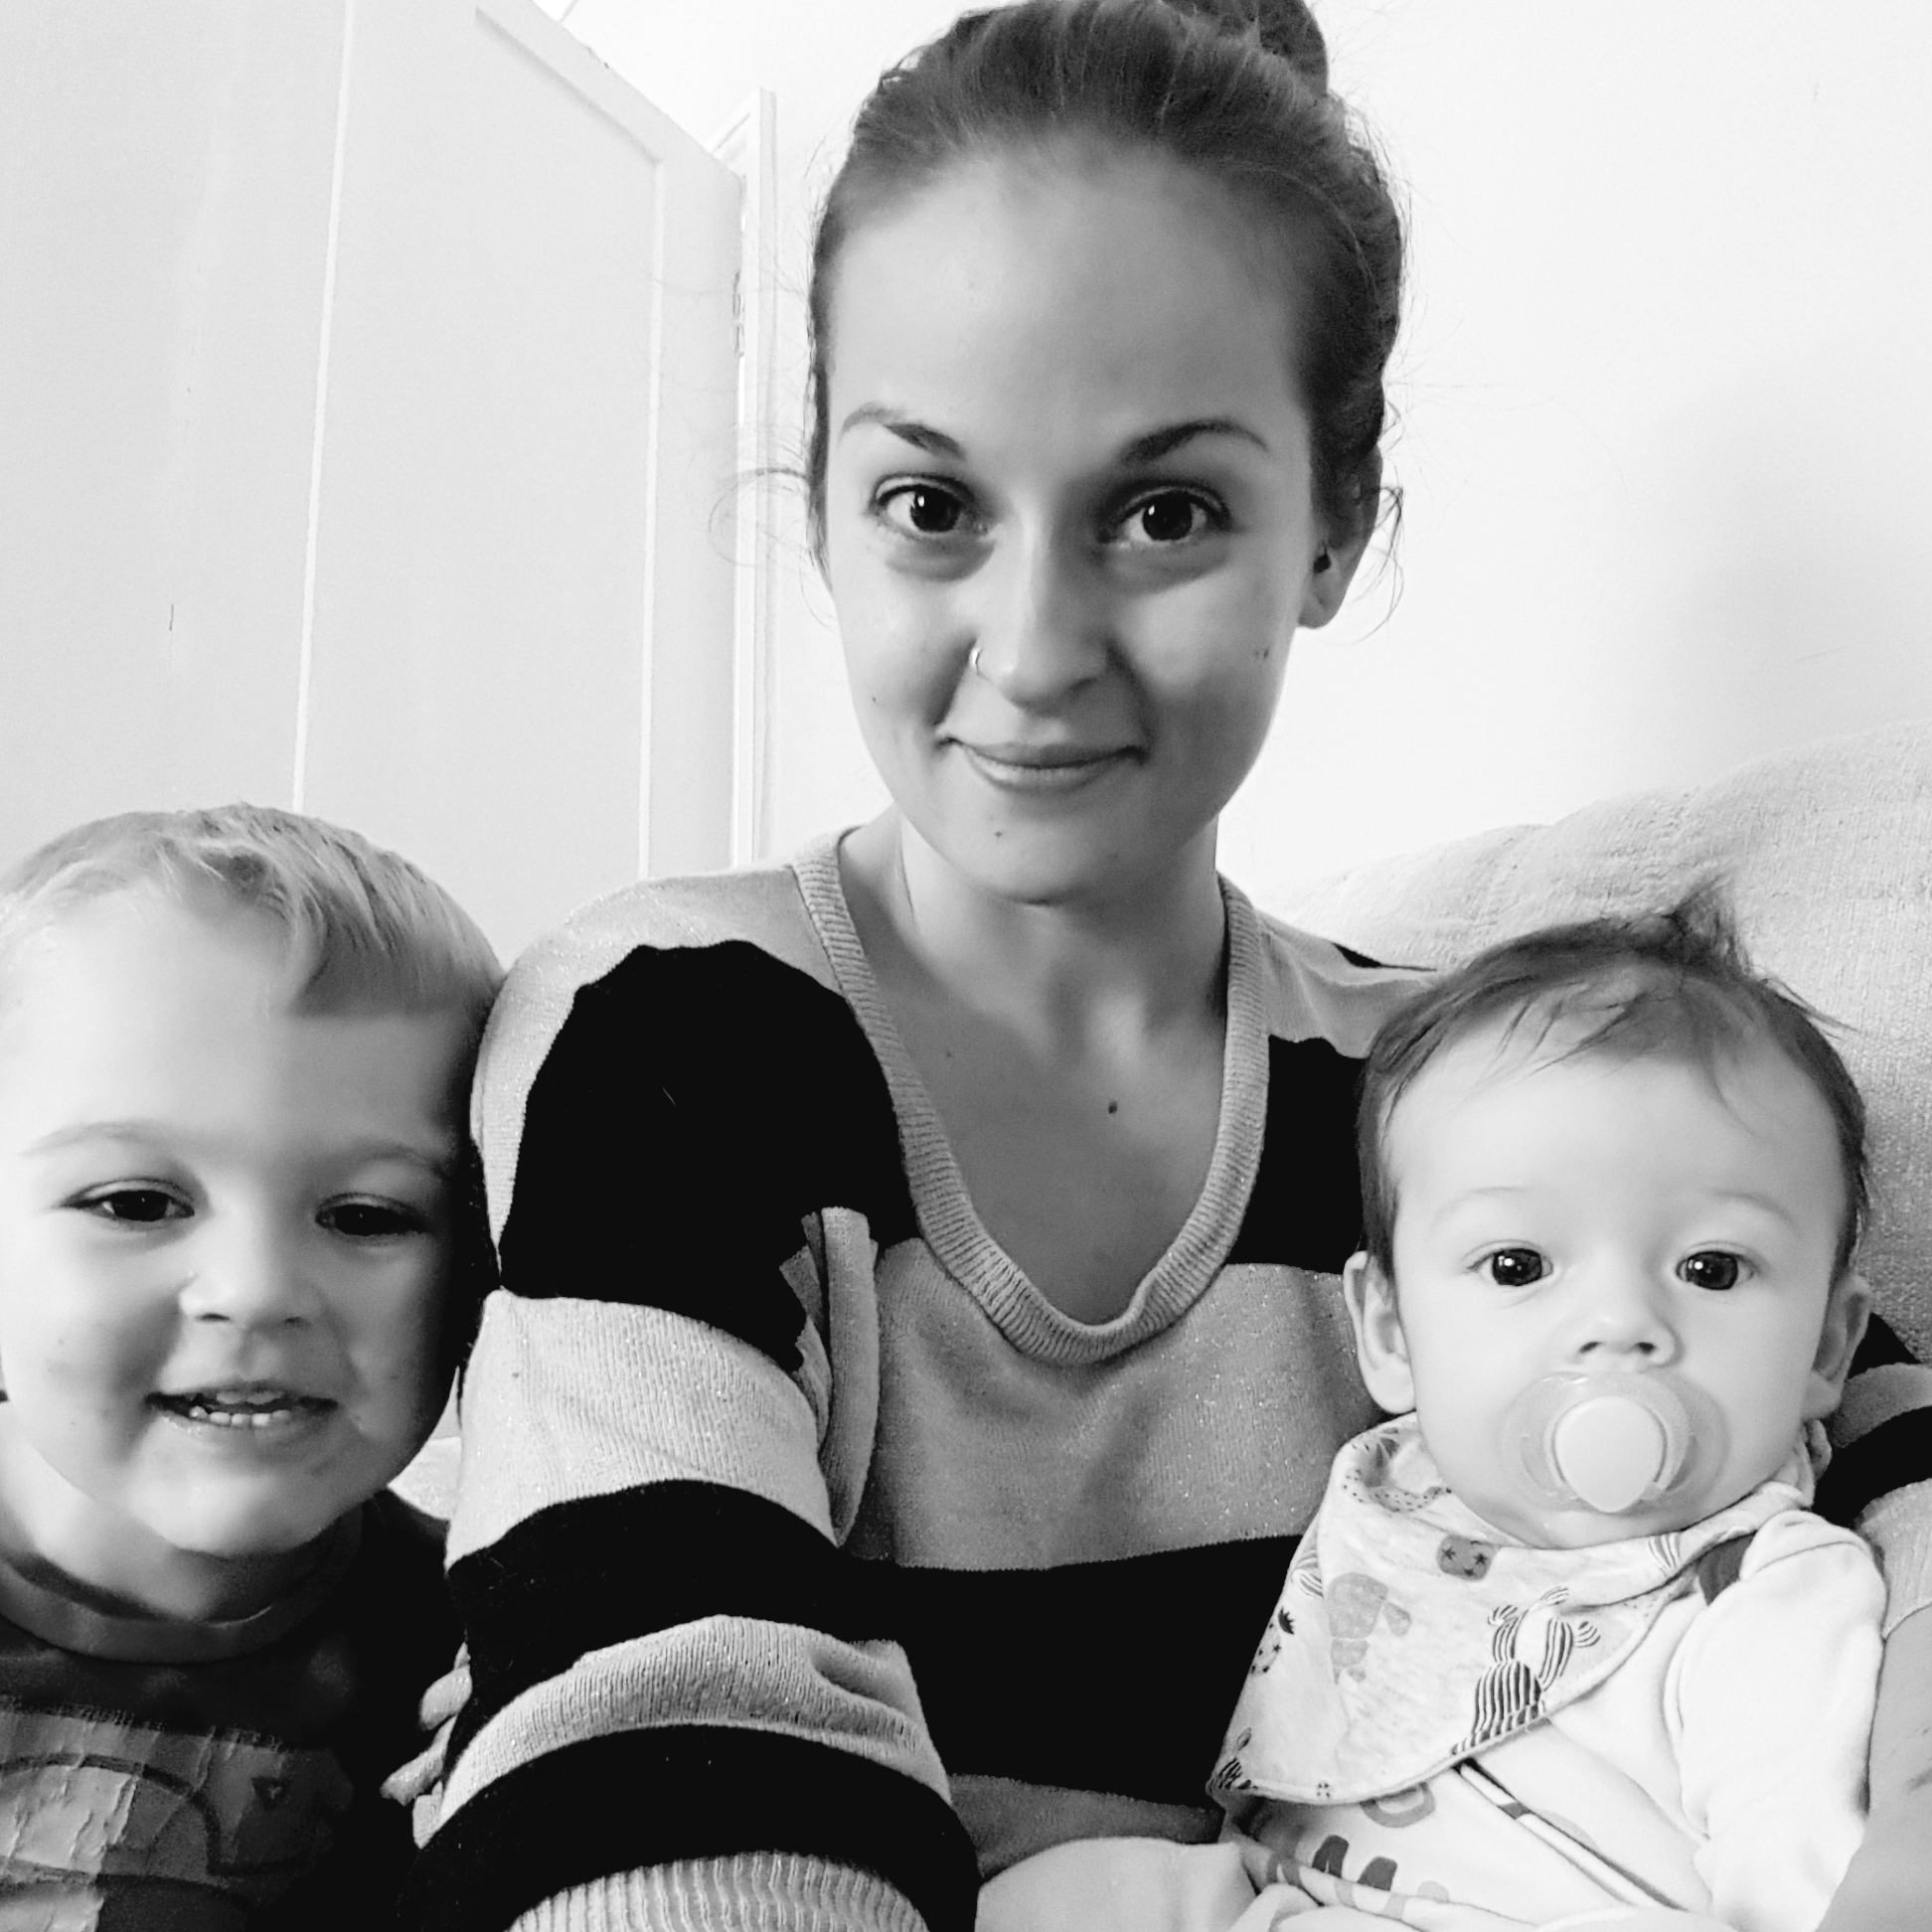 Vicki Cockerill - As well as her brilliant blog, you can find Vicki on Instagram, Facebook and Twitter. Read her latest article for Blasting News here.